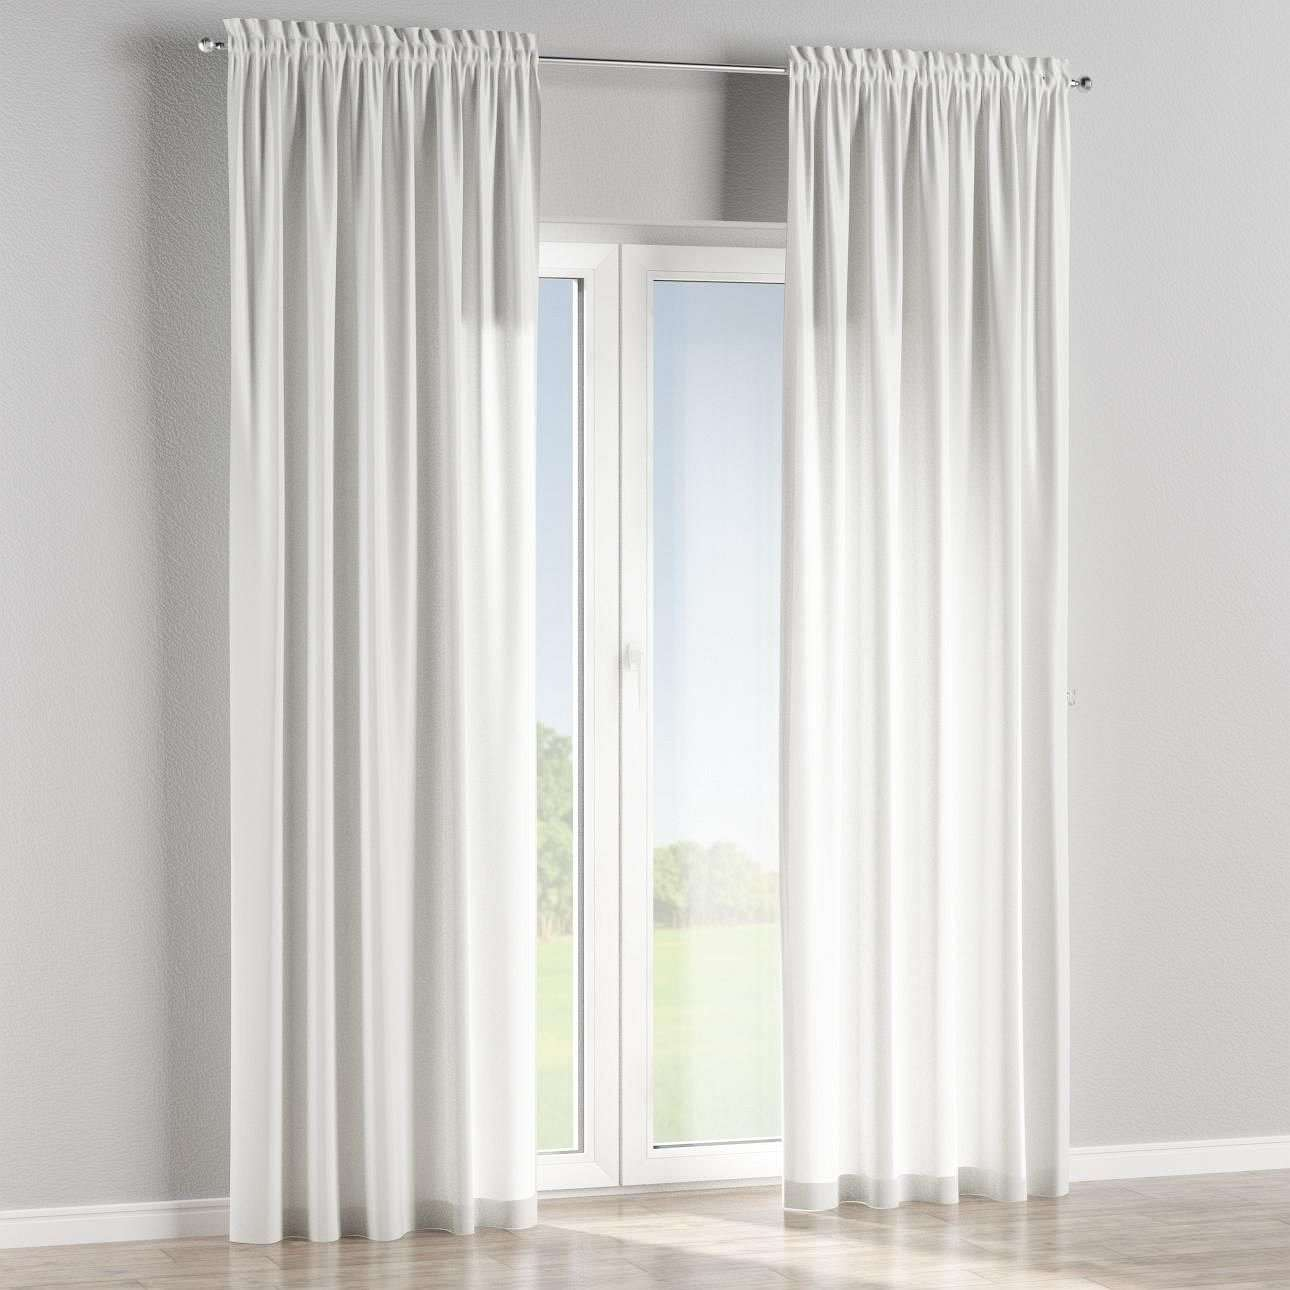 Slot and frill curtains in collection Ashley, fabric: 137-49